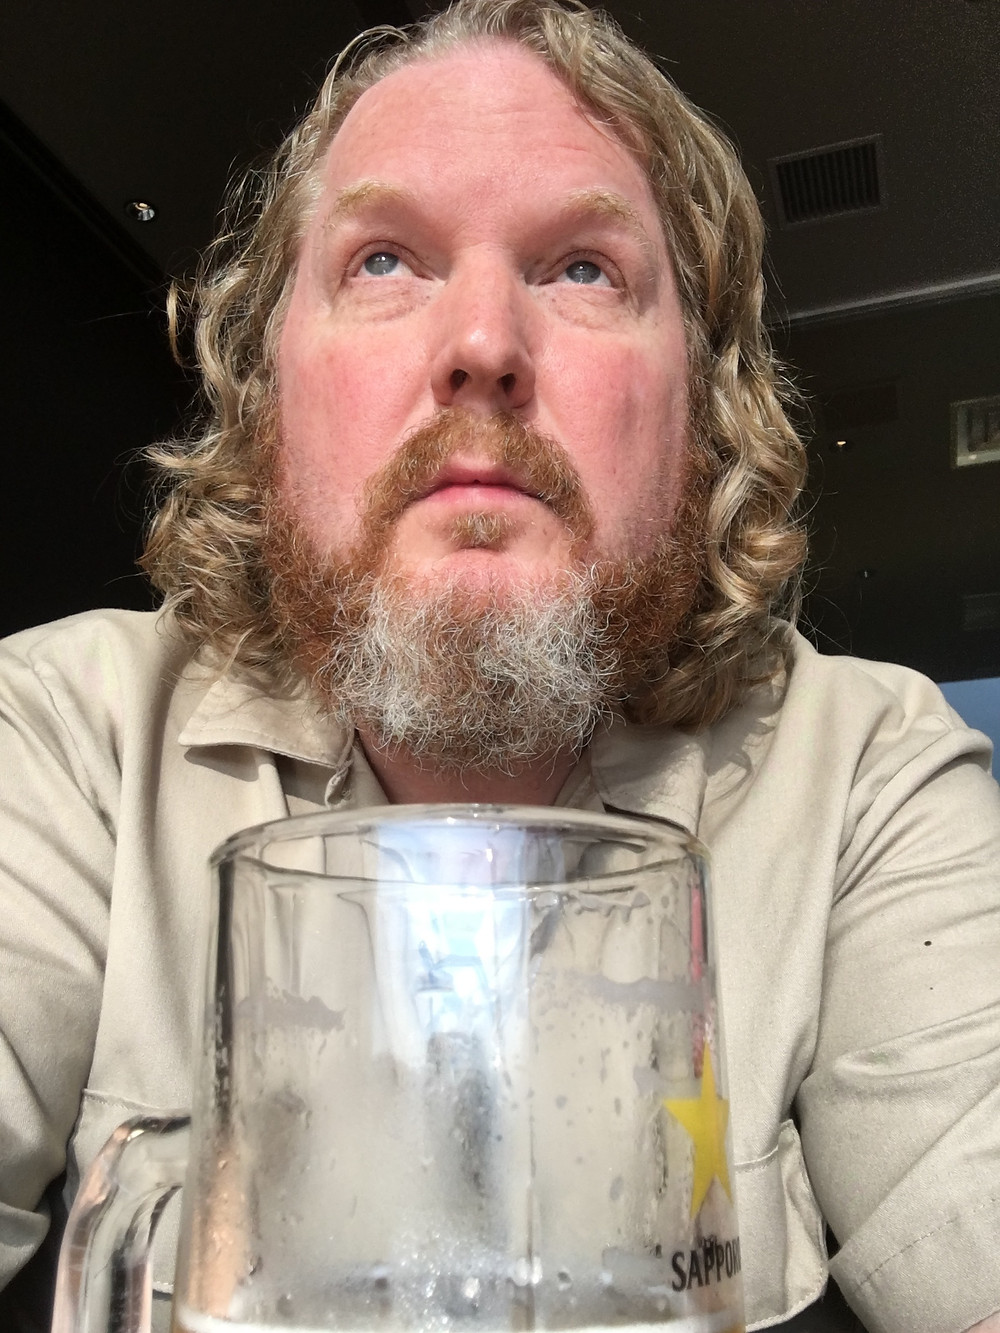 Tokyo Narita Airport - Alone with a large Sapporo beer